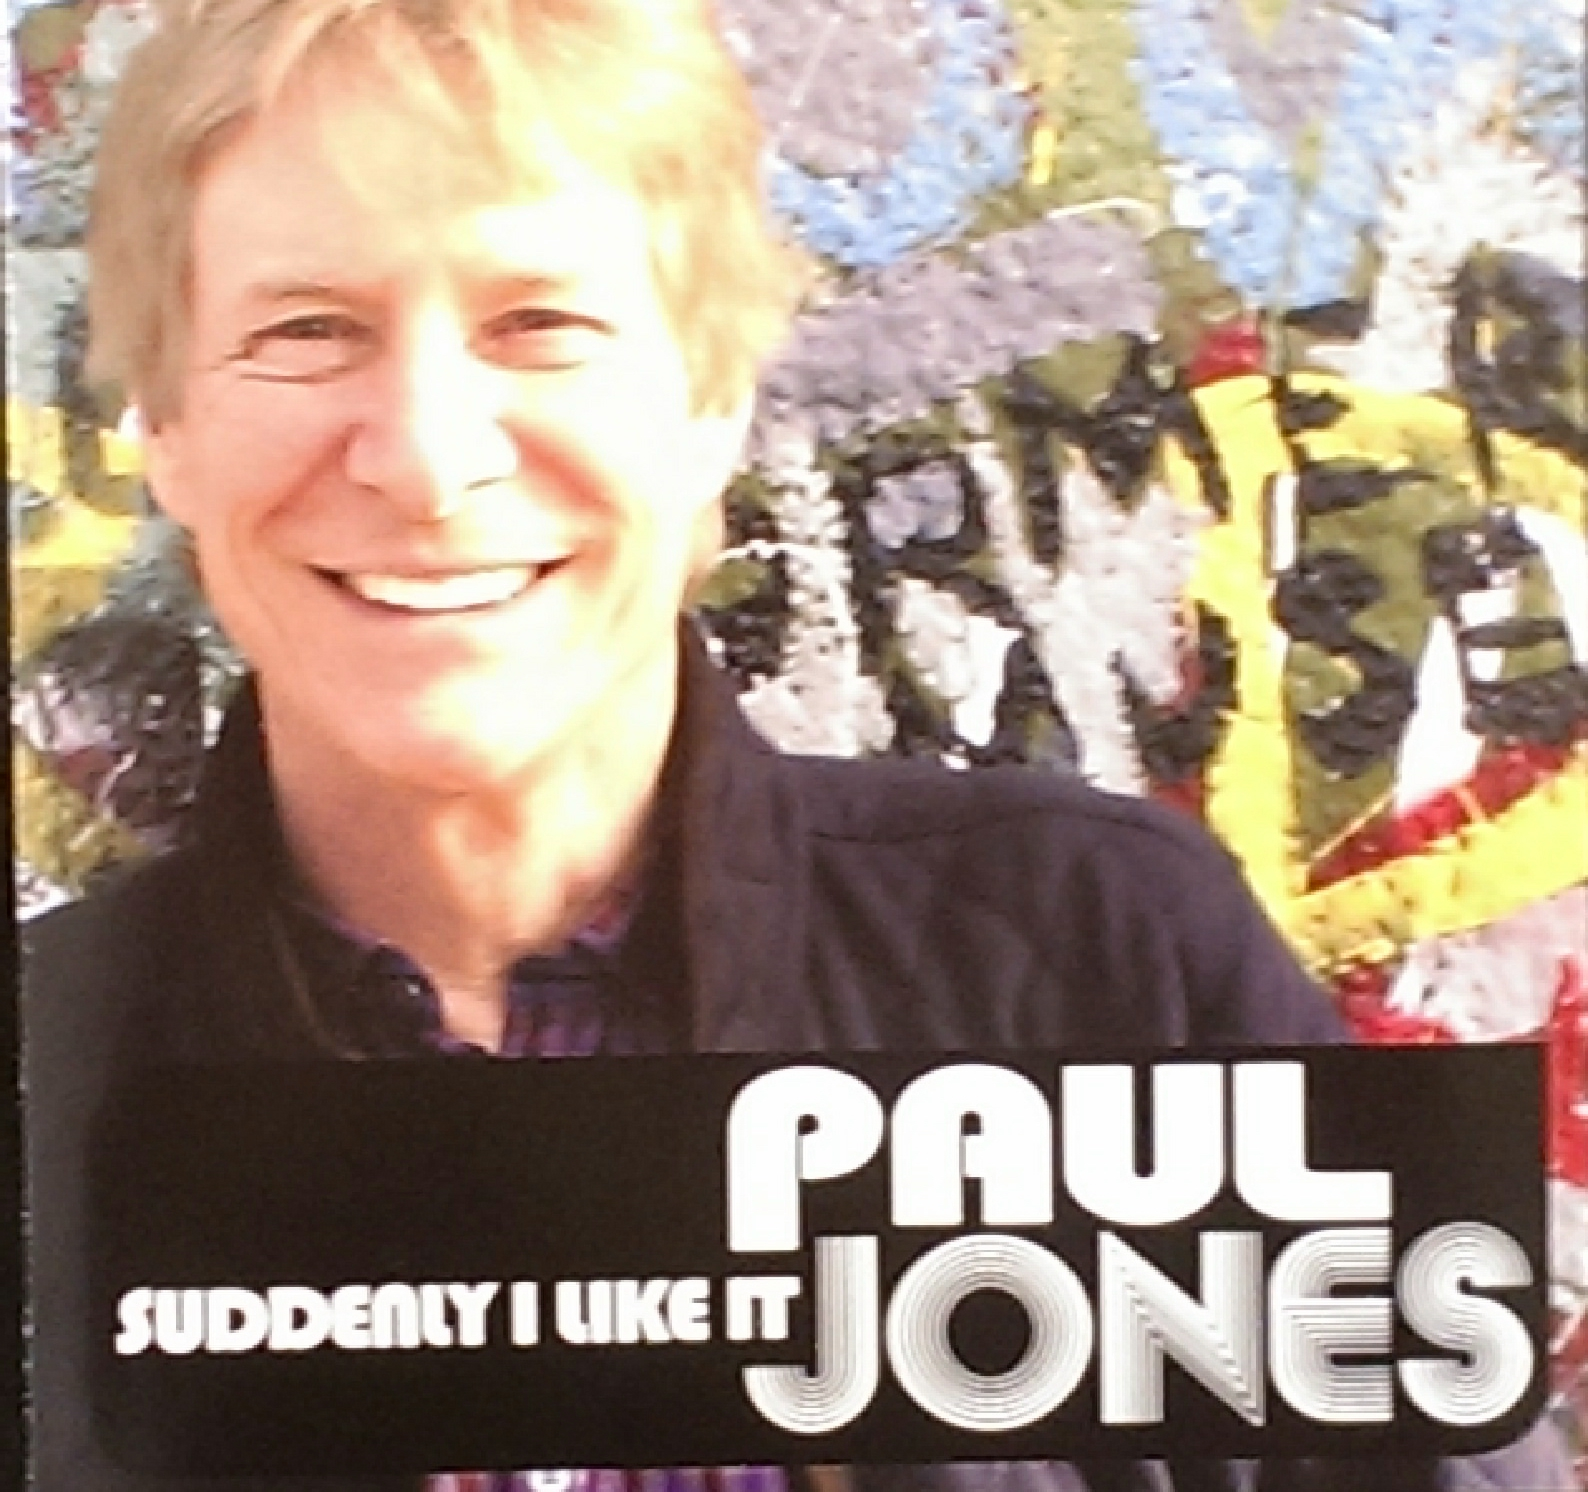 *NEW* Paul Jones \'Suddenly I Like It\'